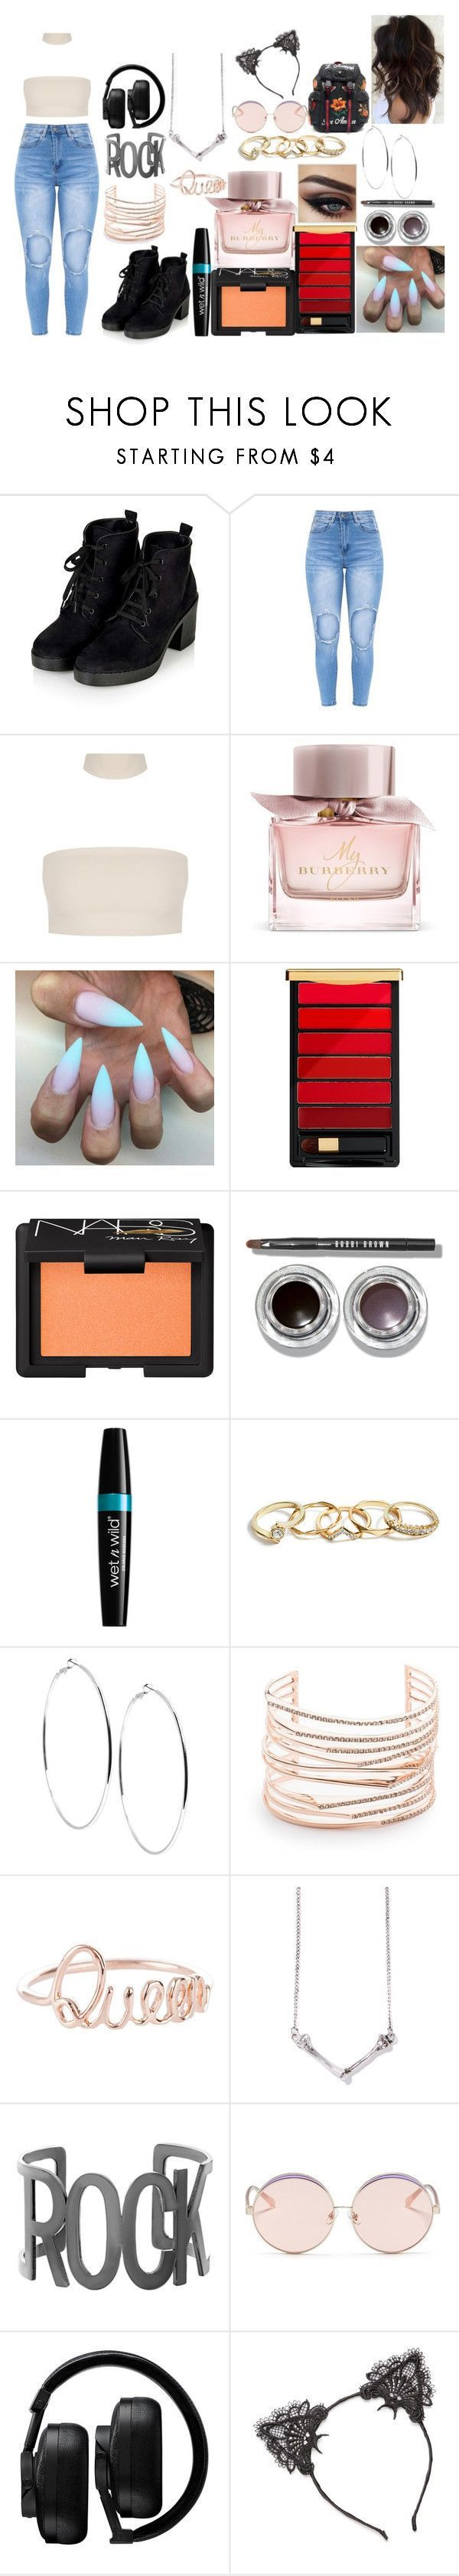 School outfit polyvore pinterest – School outfits preppy nars cosmetics